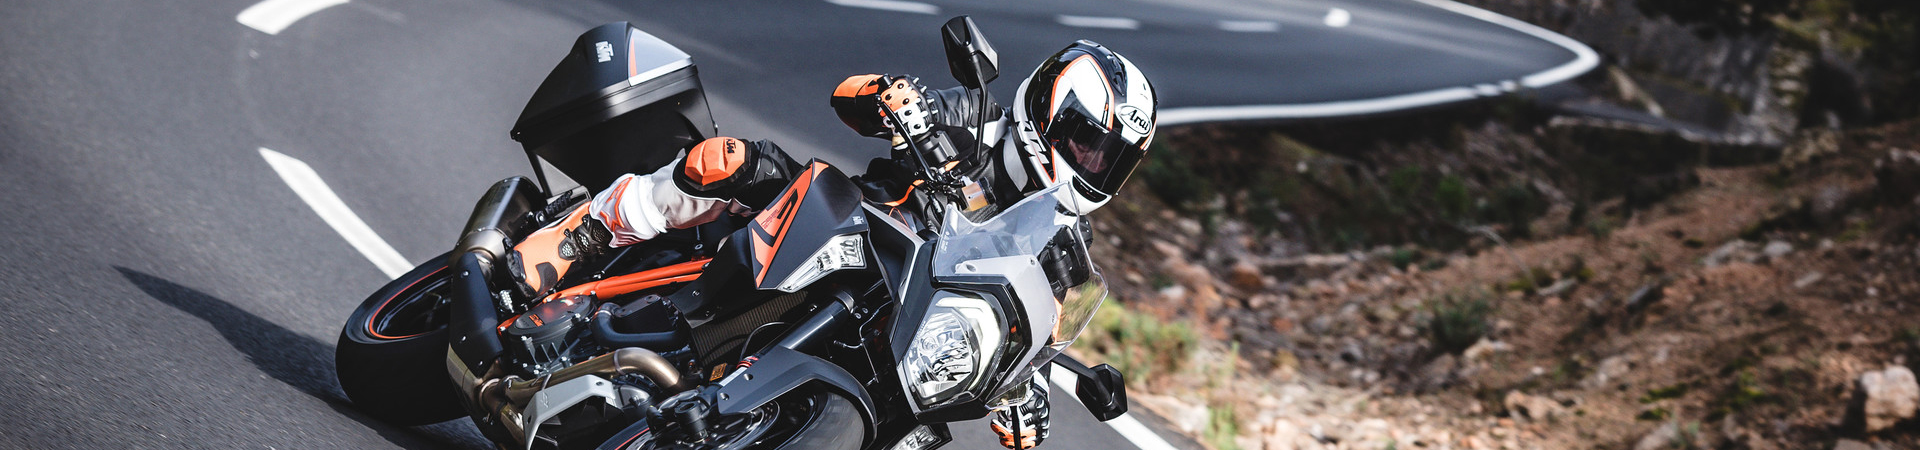 Street / Road Riding Gear banner image